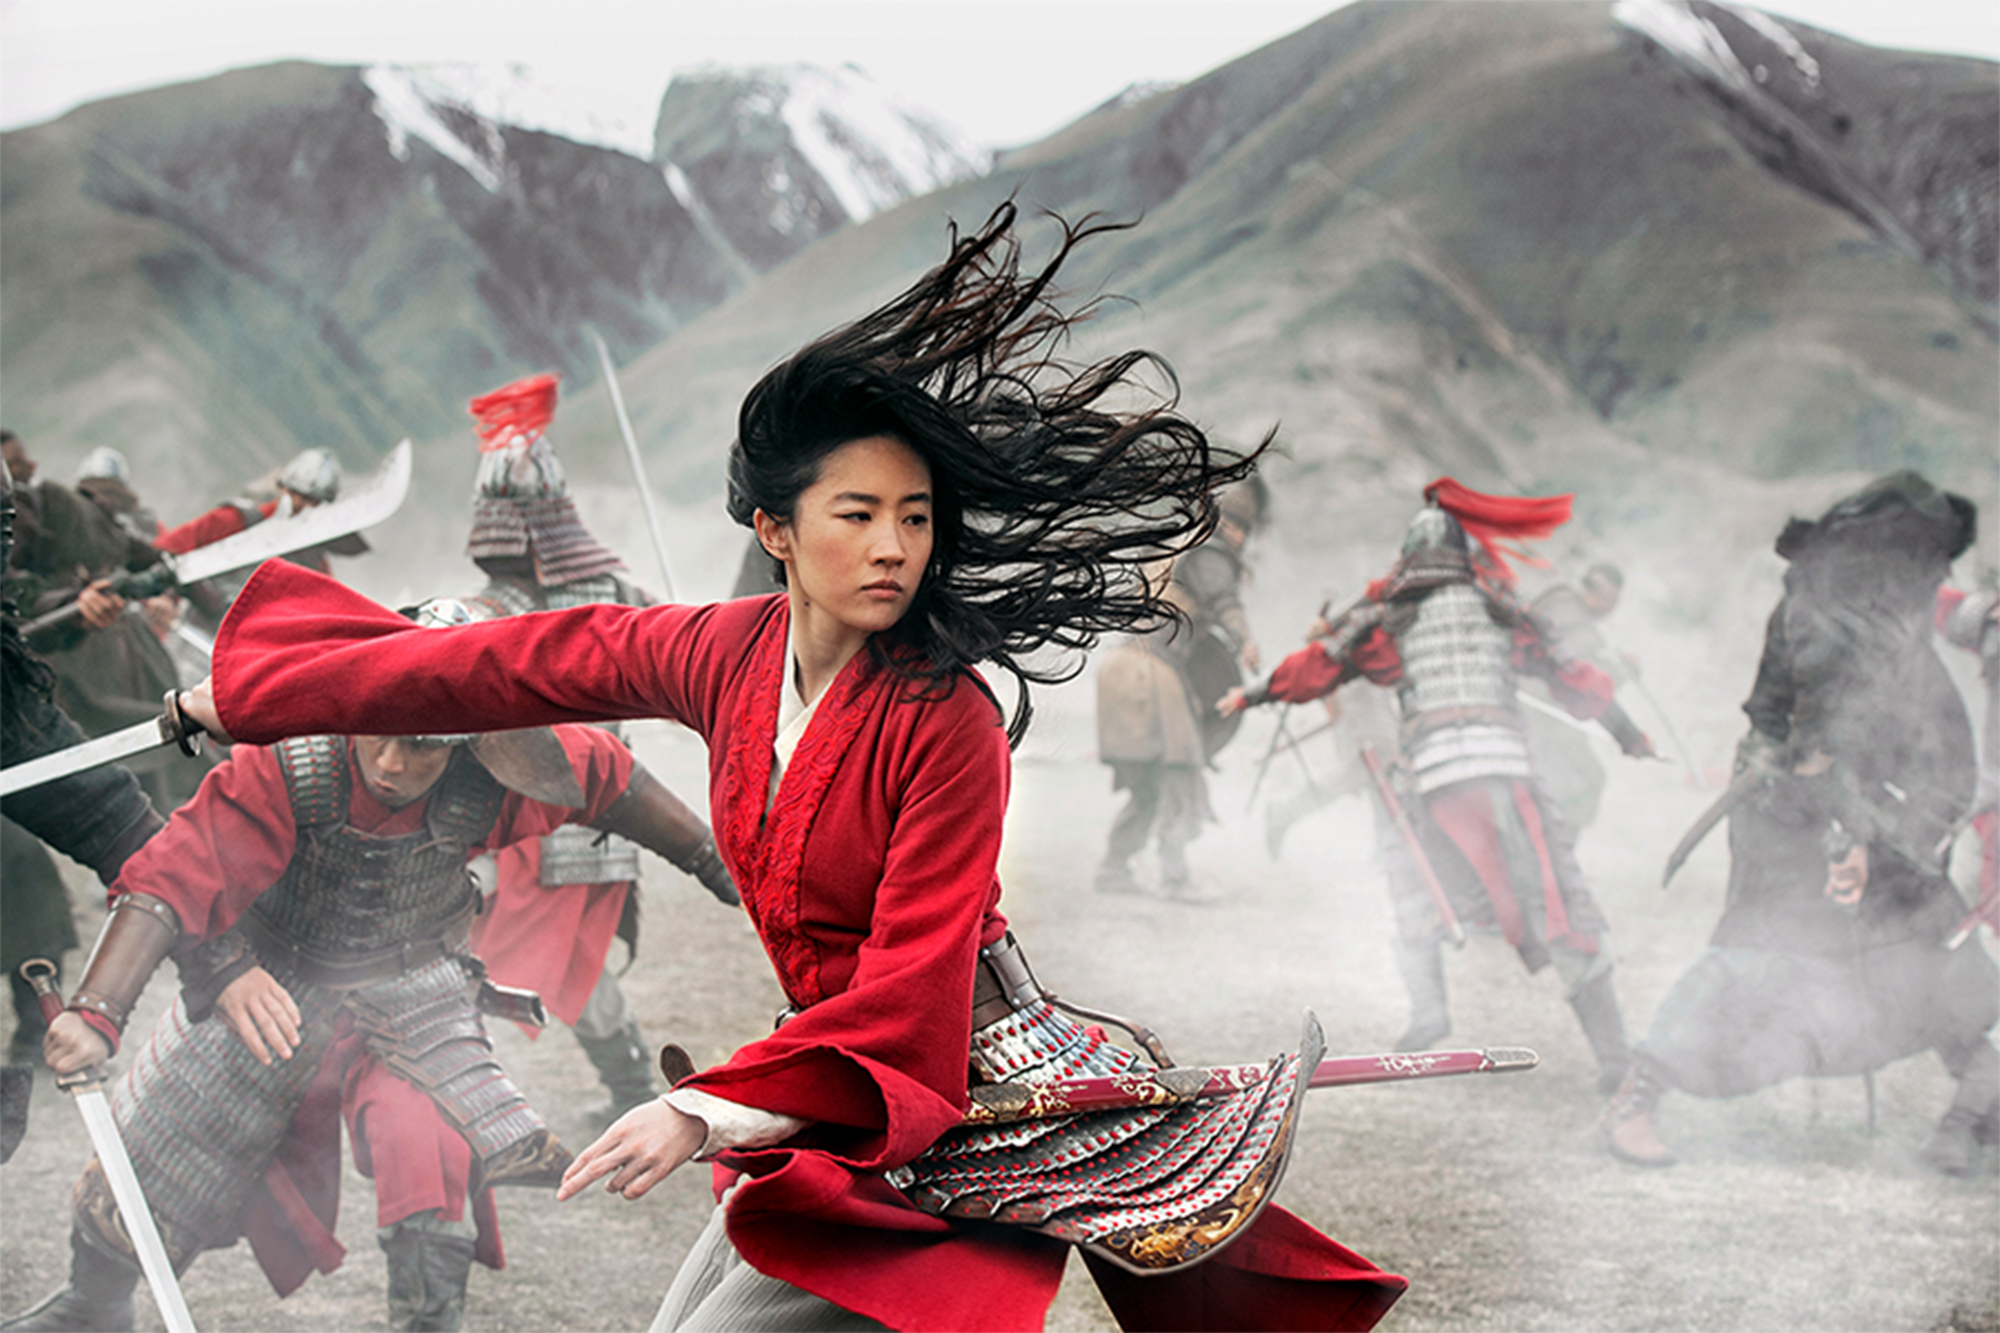 Chinese Government's role in 'Mulan' production called into question